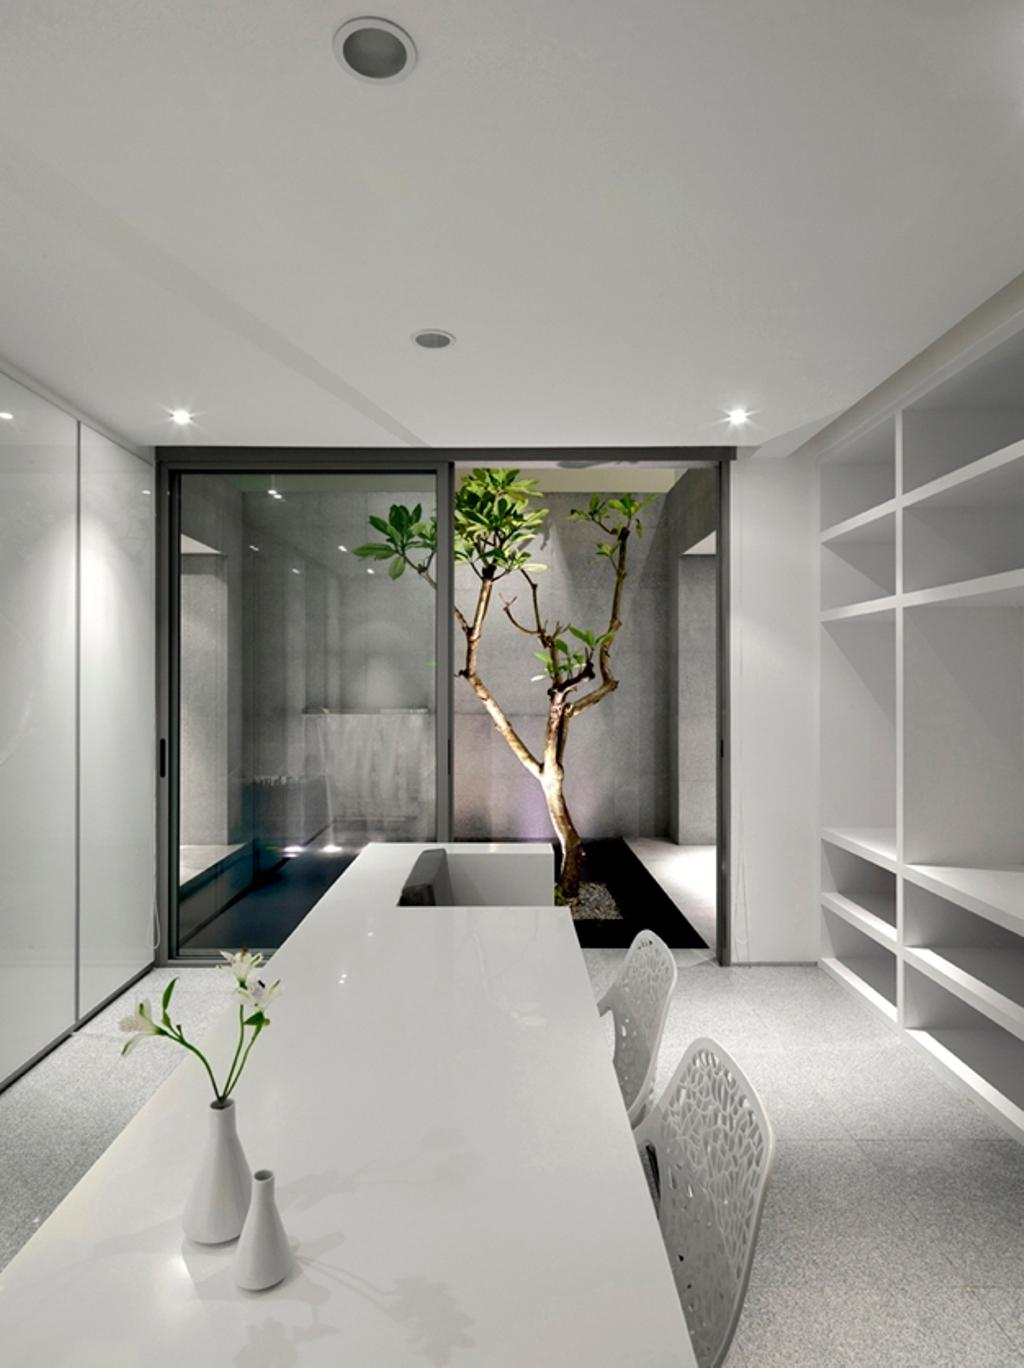 Modern, Landed, Ontario, Architect, Ministry of Design, White Ceiling, Recessed Lighting, Recessed Lights, White Cabinet, Open Cabinet, Glass Doors, Planted Trees, White Table, Potted Plant, Chairs, White Chairs, Bonsai, Flora, Jar, Plant, Pottery, Tree, Vase, Sink, Art, Blossom, Flower, Flower Arrangement, Ikebana, Ornament